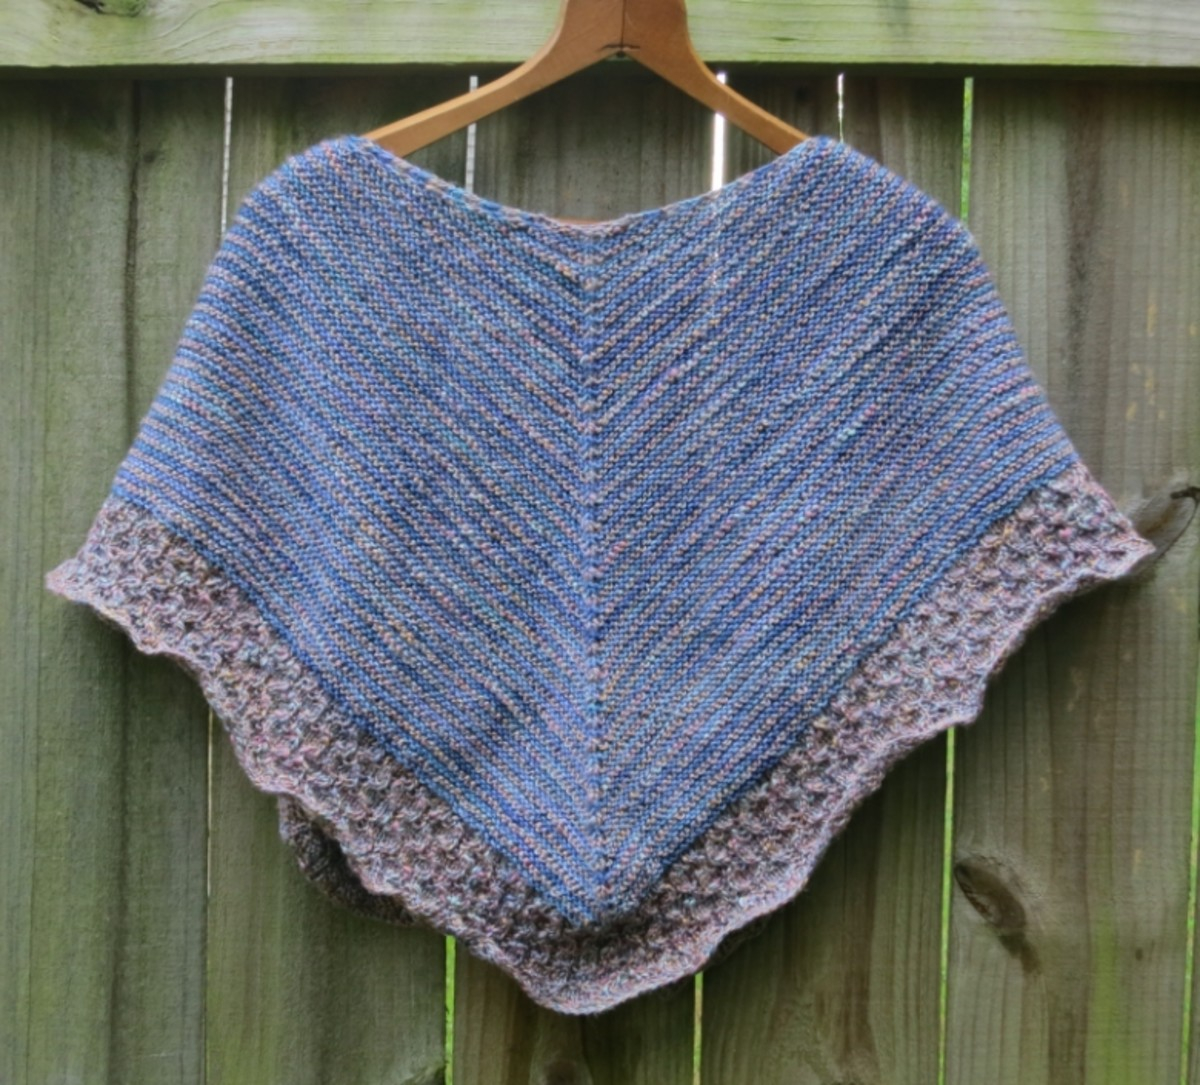 Knitting Patterns For Wraps Free : Free Knitting Pattern: Lightweight Textured Shawl HubPages